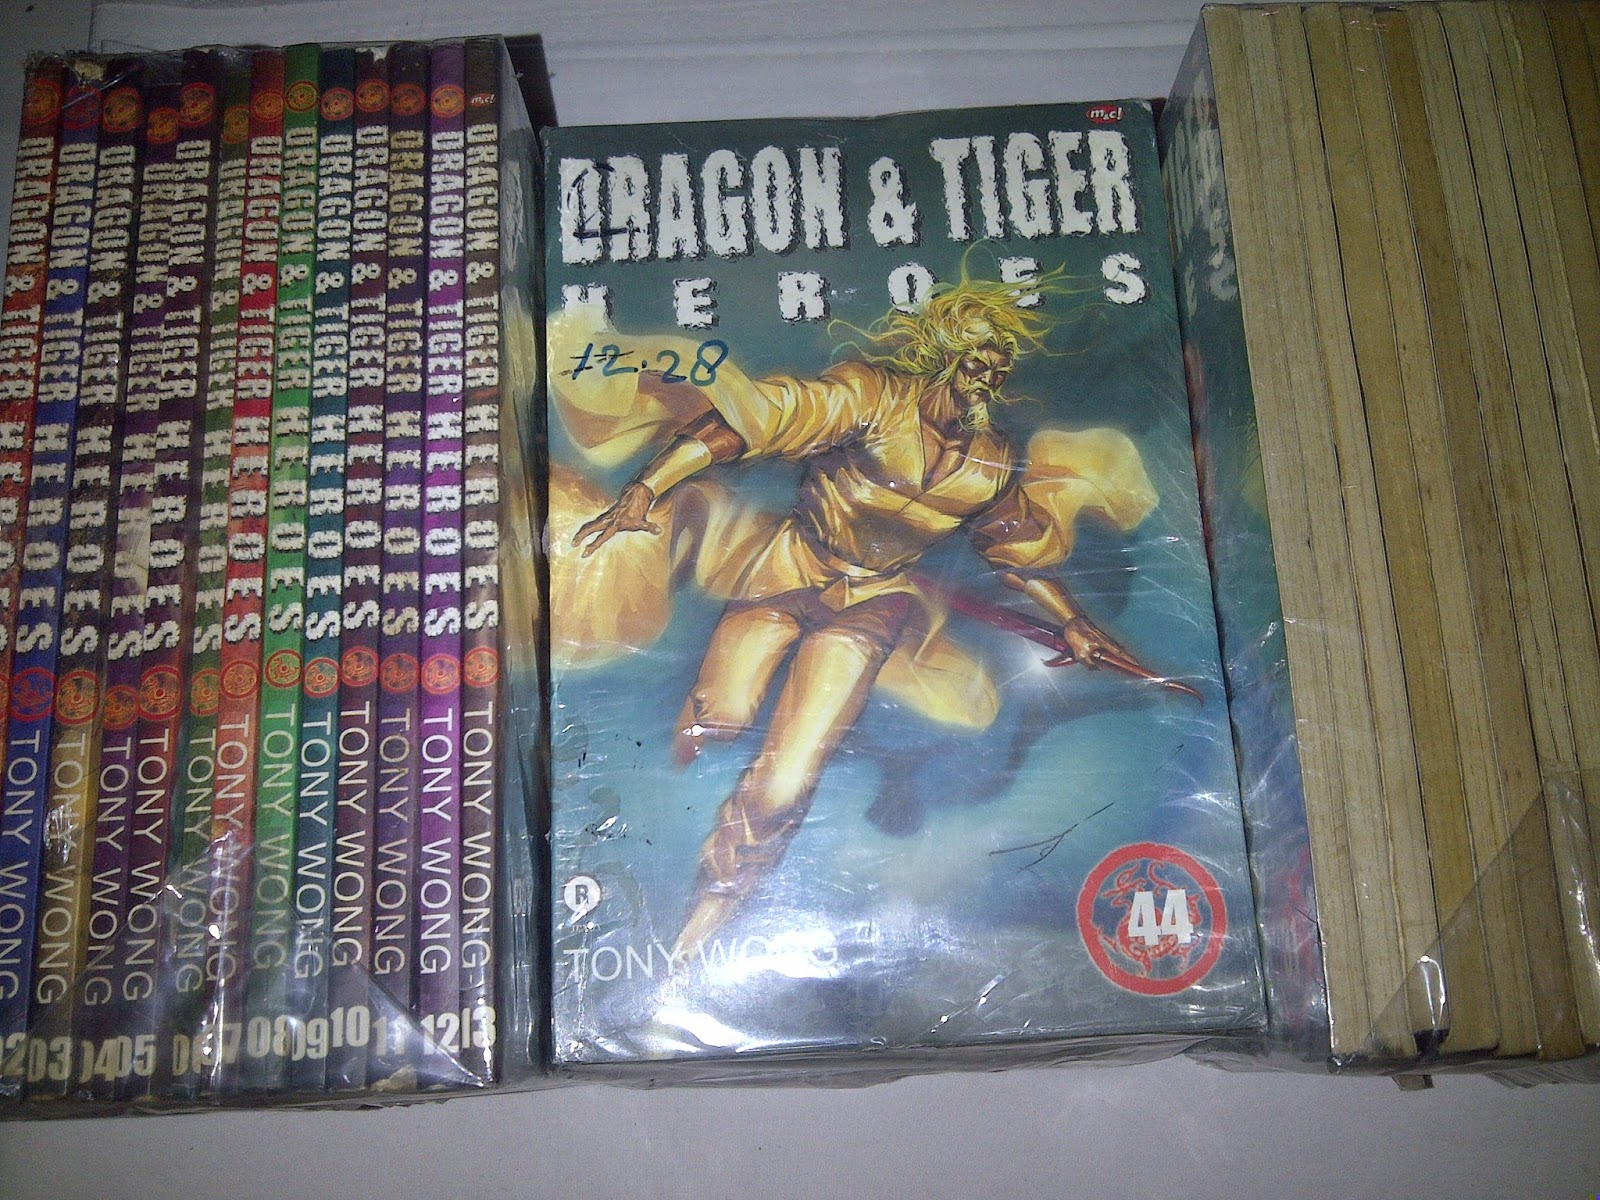 Dragon & Tiger Heroes 1 - 44, X Rental (Tony Wong) @9,500 - 418,000